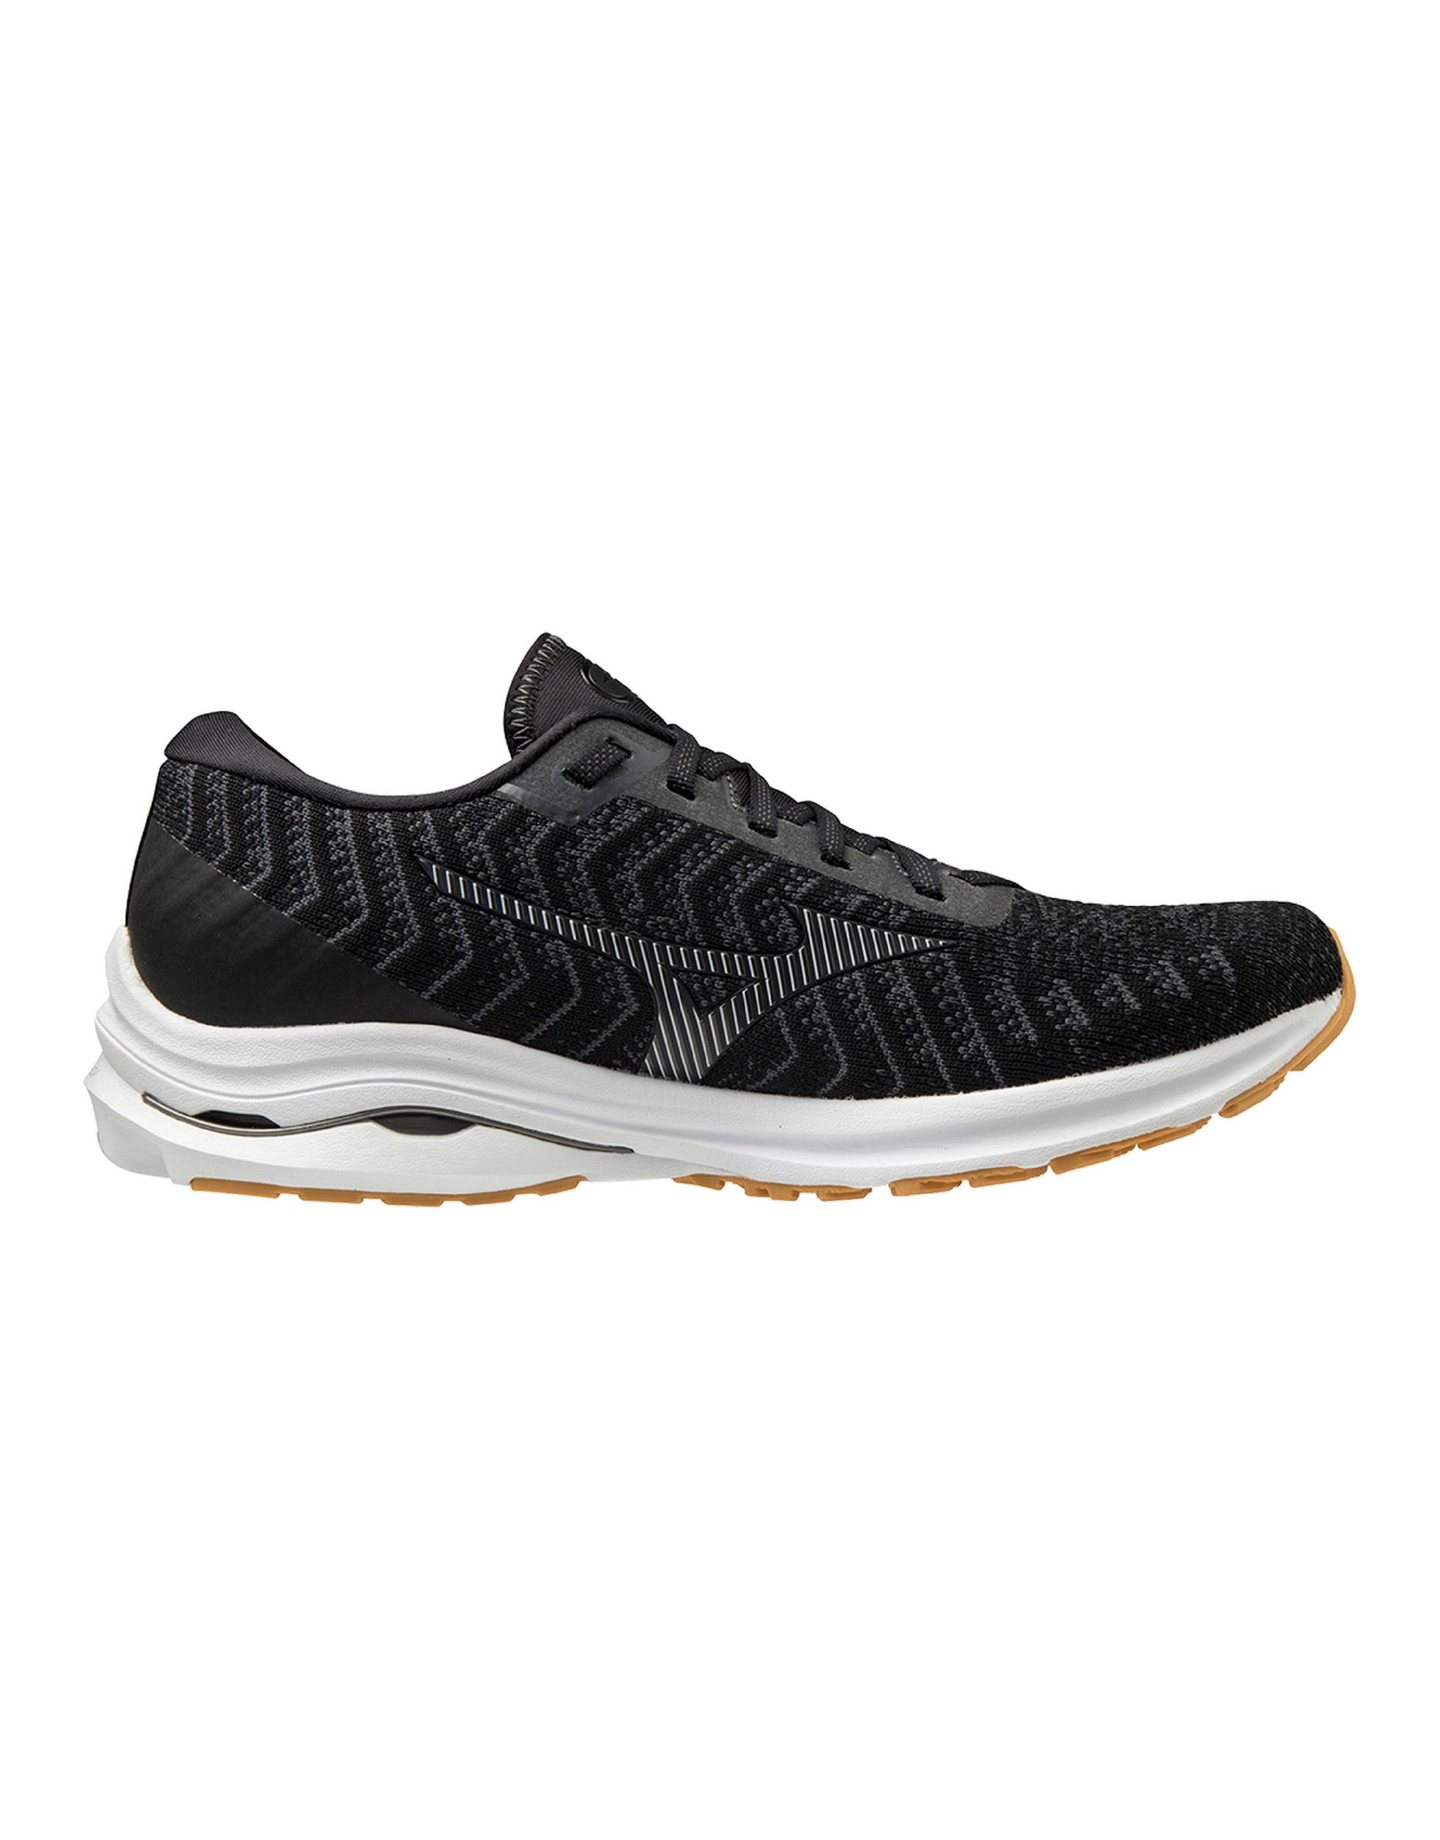 Mizuno Mizuno Wave Rider 24 Waveknit - Men